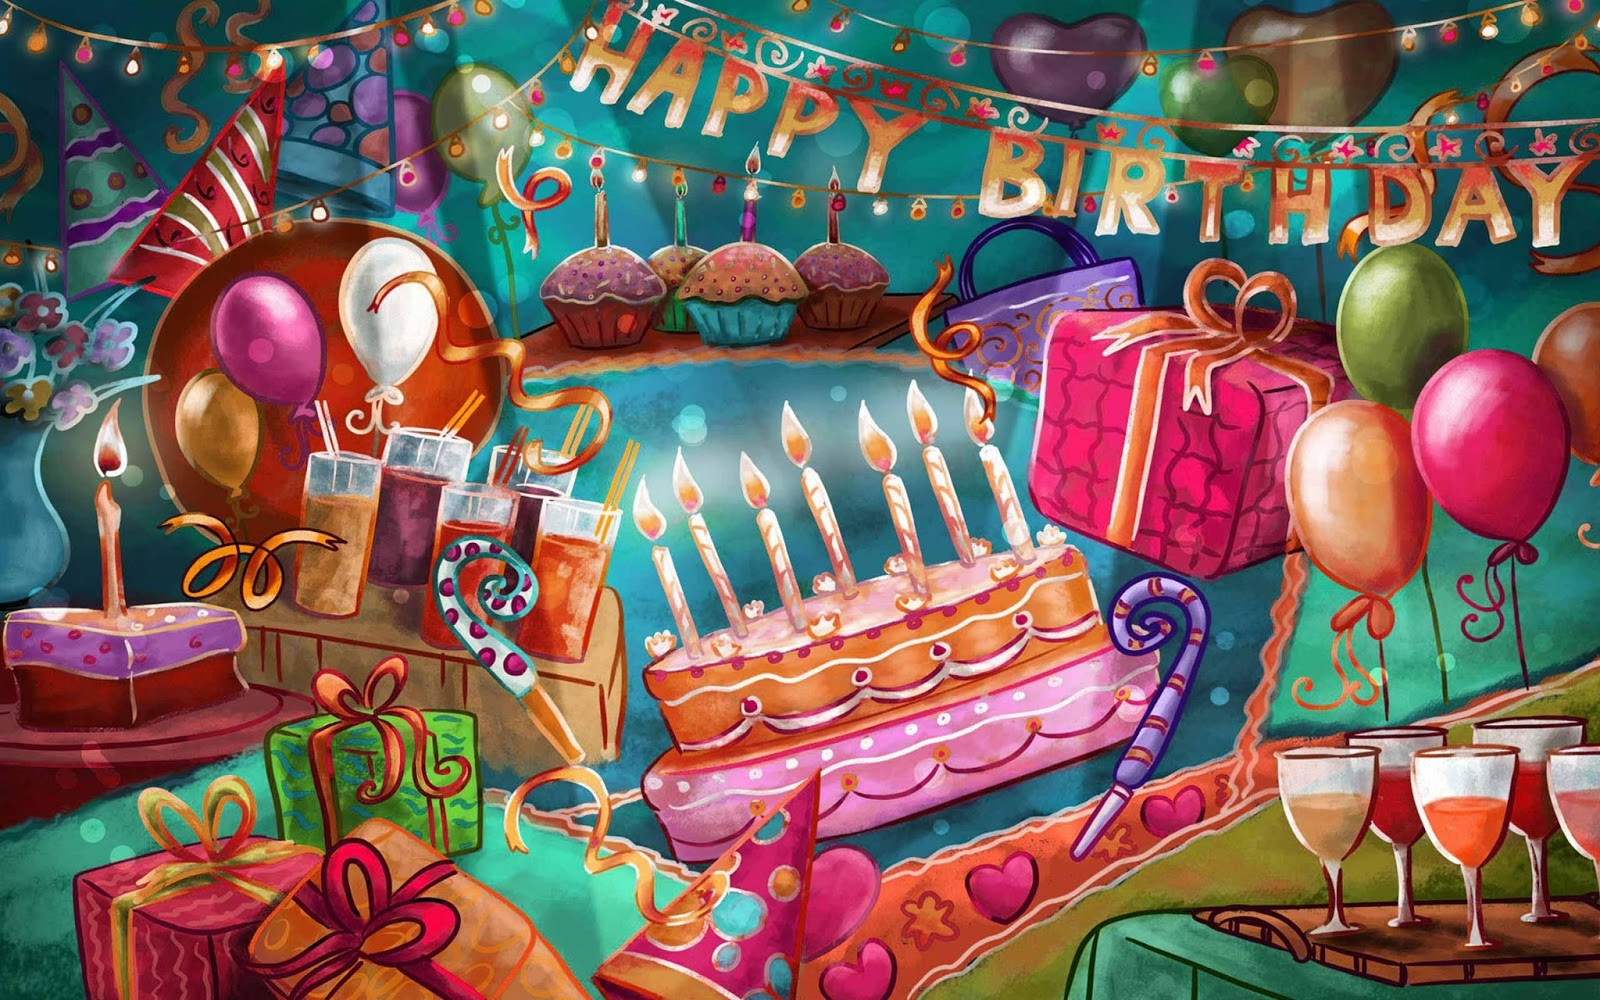 Happy birthday greetings wishes high resolution hd 2013 wallpapers free download full hd wall - Happy birthday wallpaper download hd ...